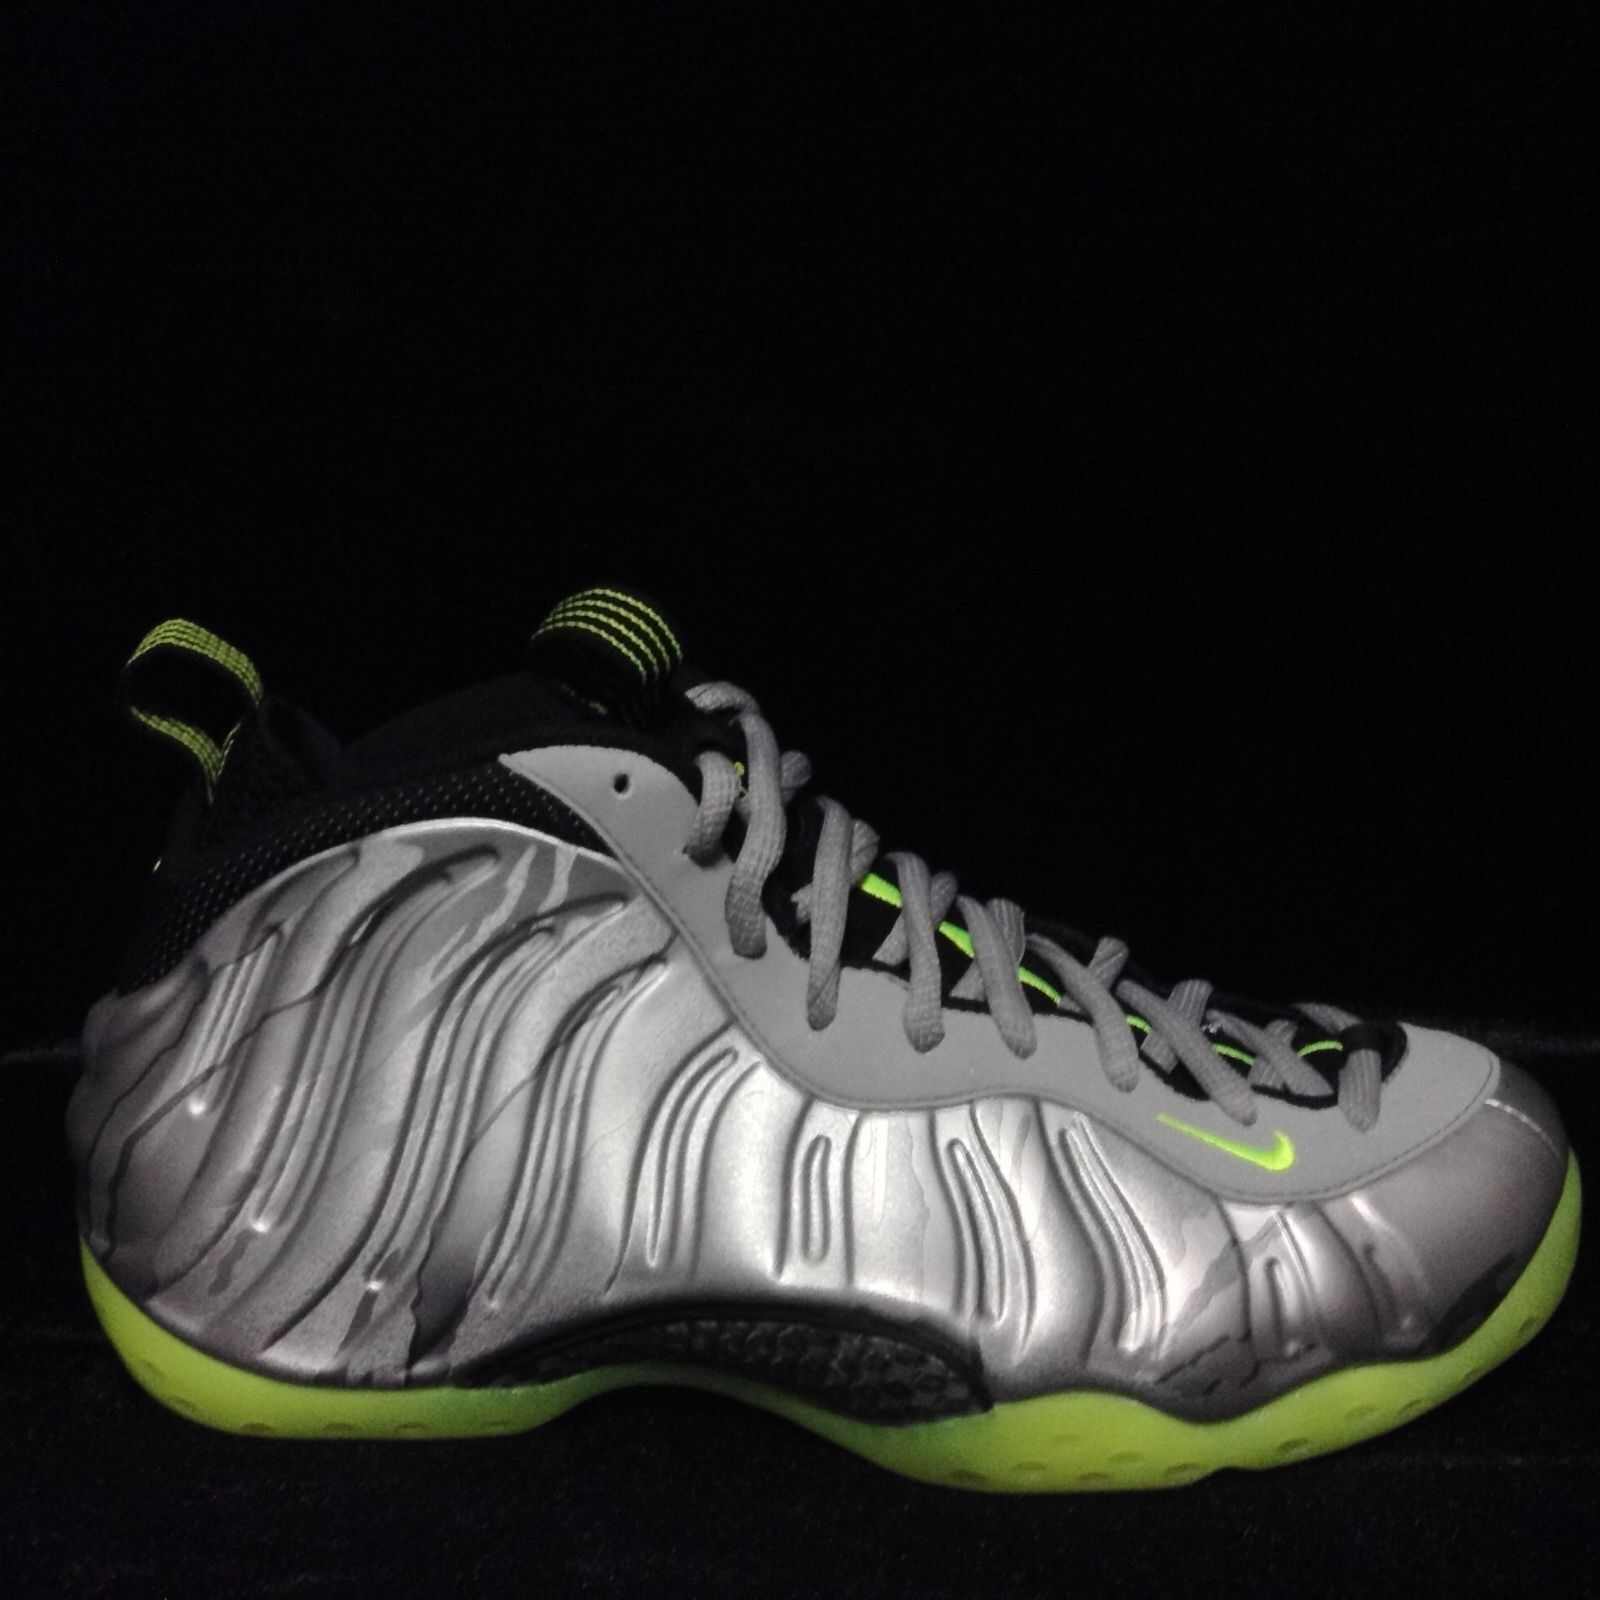 detailed look 62b37 ddd93 ... coupon code for nike air foamposite one prm metallic plata volt nuevos  575420 004 ds cómodos